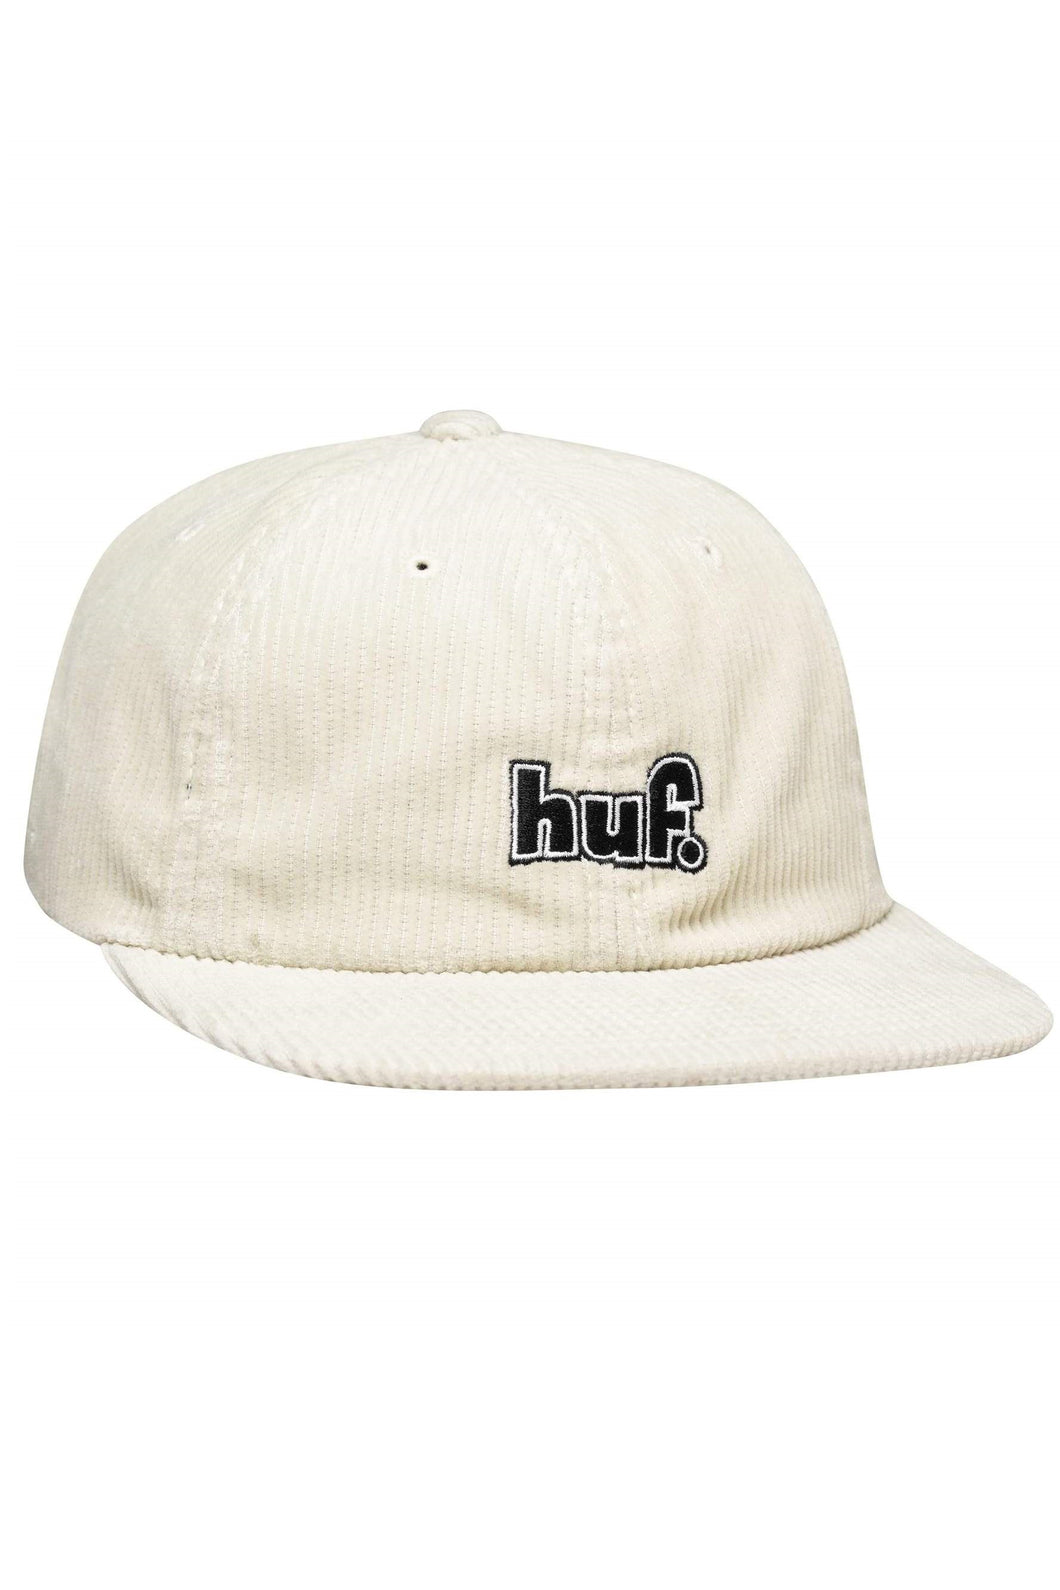 HUF Cap 6 Panel 1993 Unbleached - Circle Collective